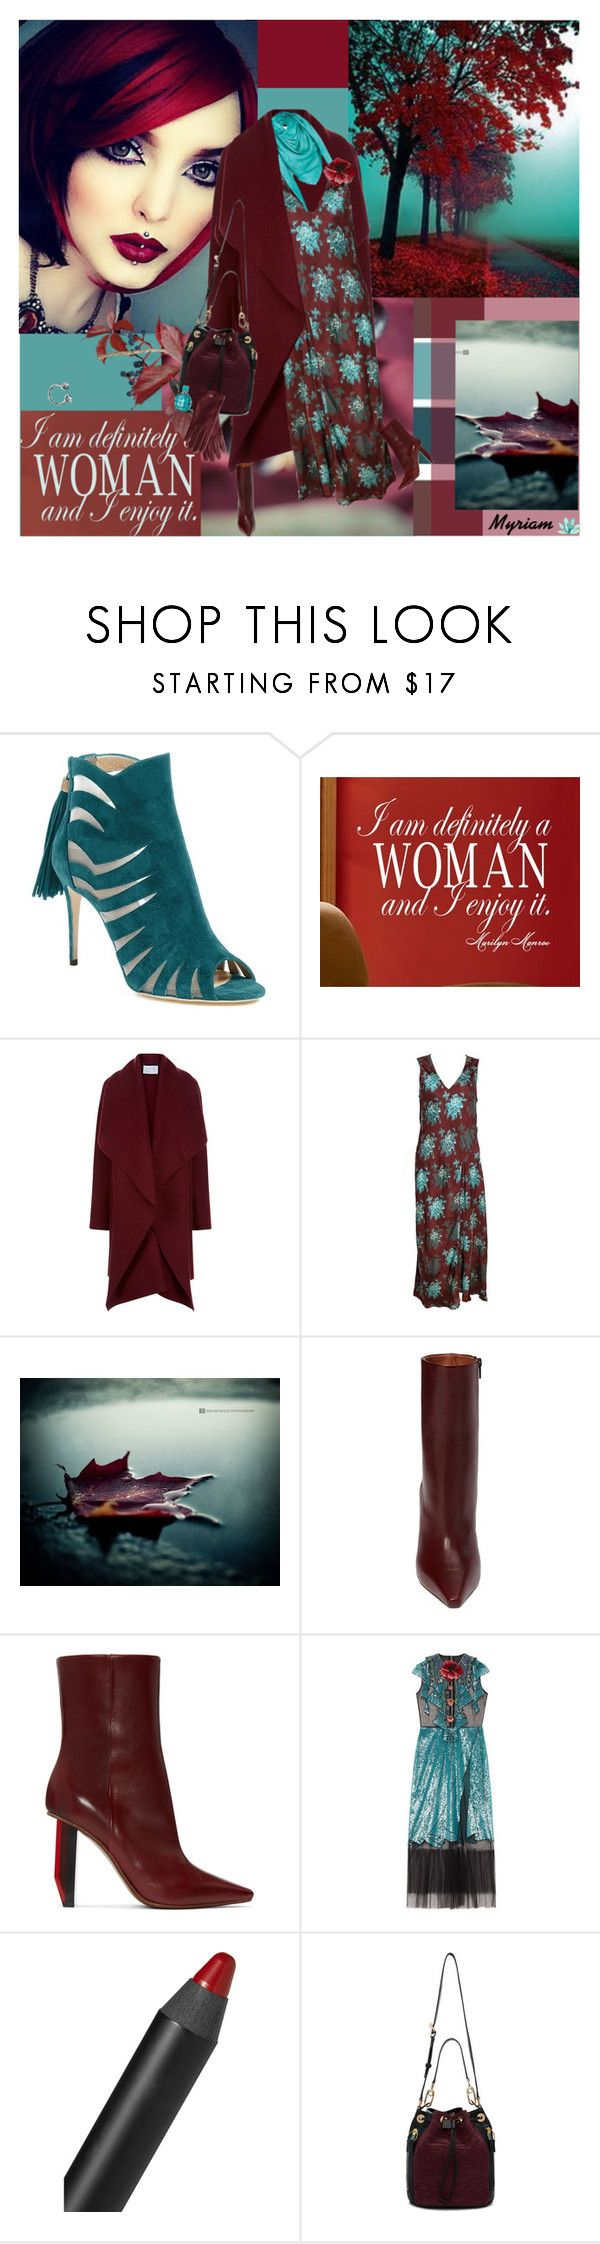 """""""I am definitely WOMAN and i enjoy it"""" by lovemeforthelife-myriam ❤ liked on Polyvore featuring Paul Andrew, WALL, Harris Wharf London, Dries Van Noten, Louis Vuitton, Vetements, Gucci, NARS Cosmetics, Kenzo and Mark & Graham"""